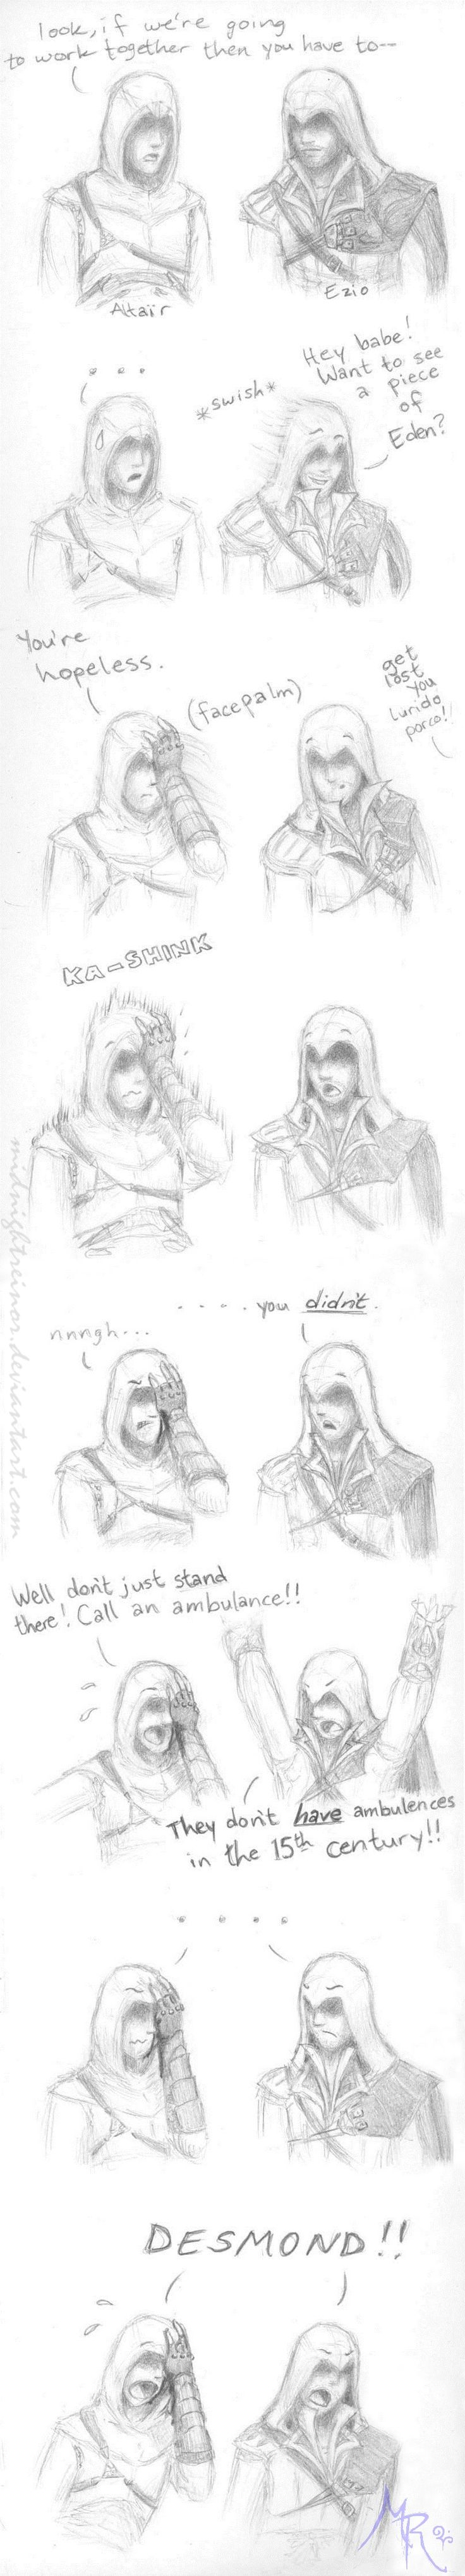 Altair FAIL by MidnightReinor.deviantart.com on @deviantART